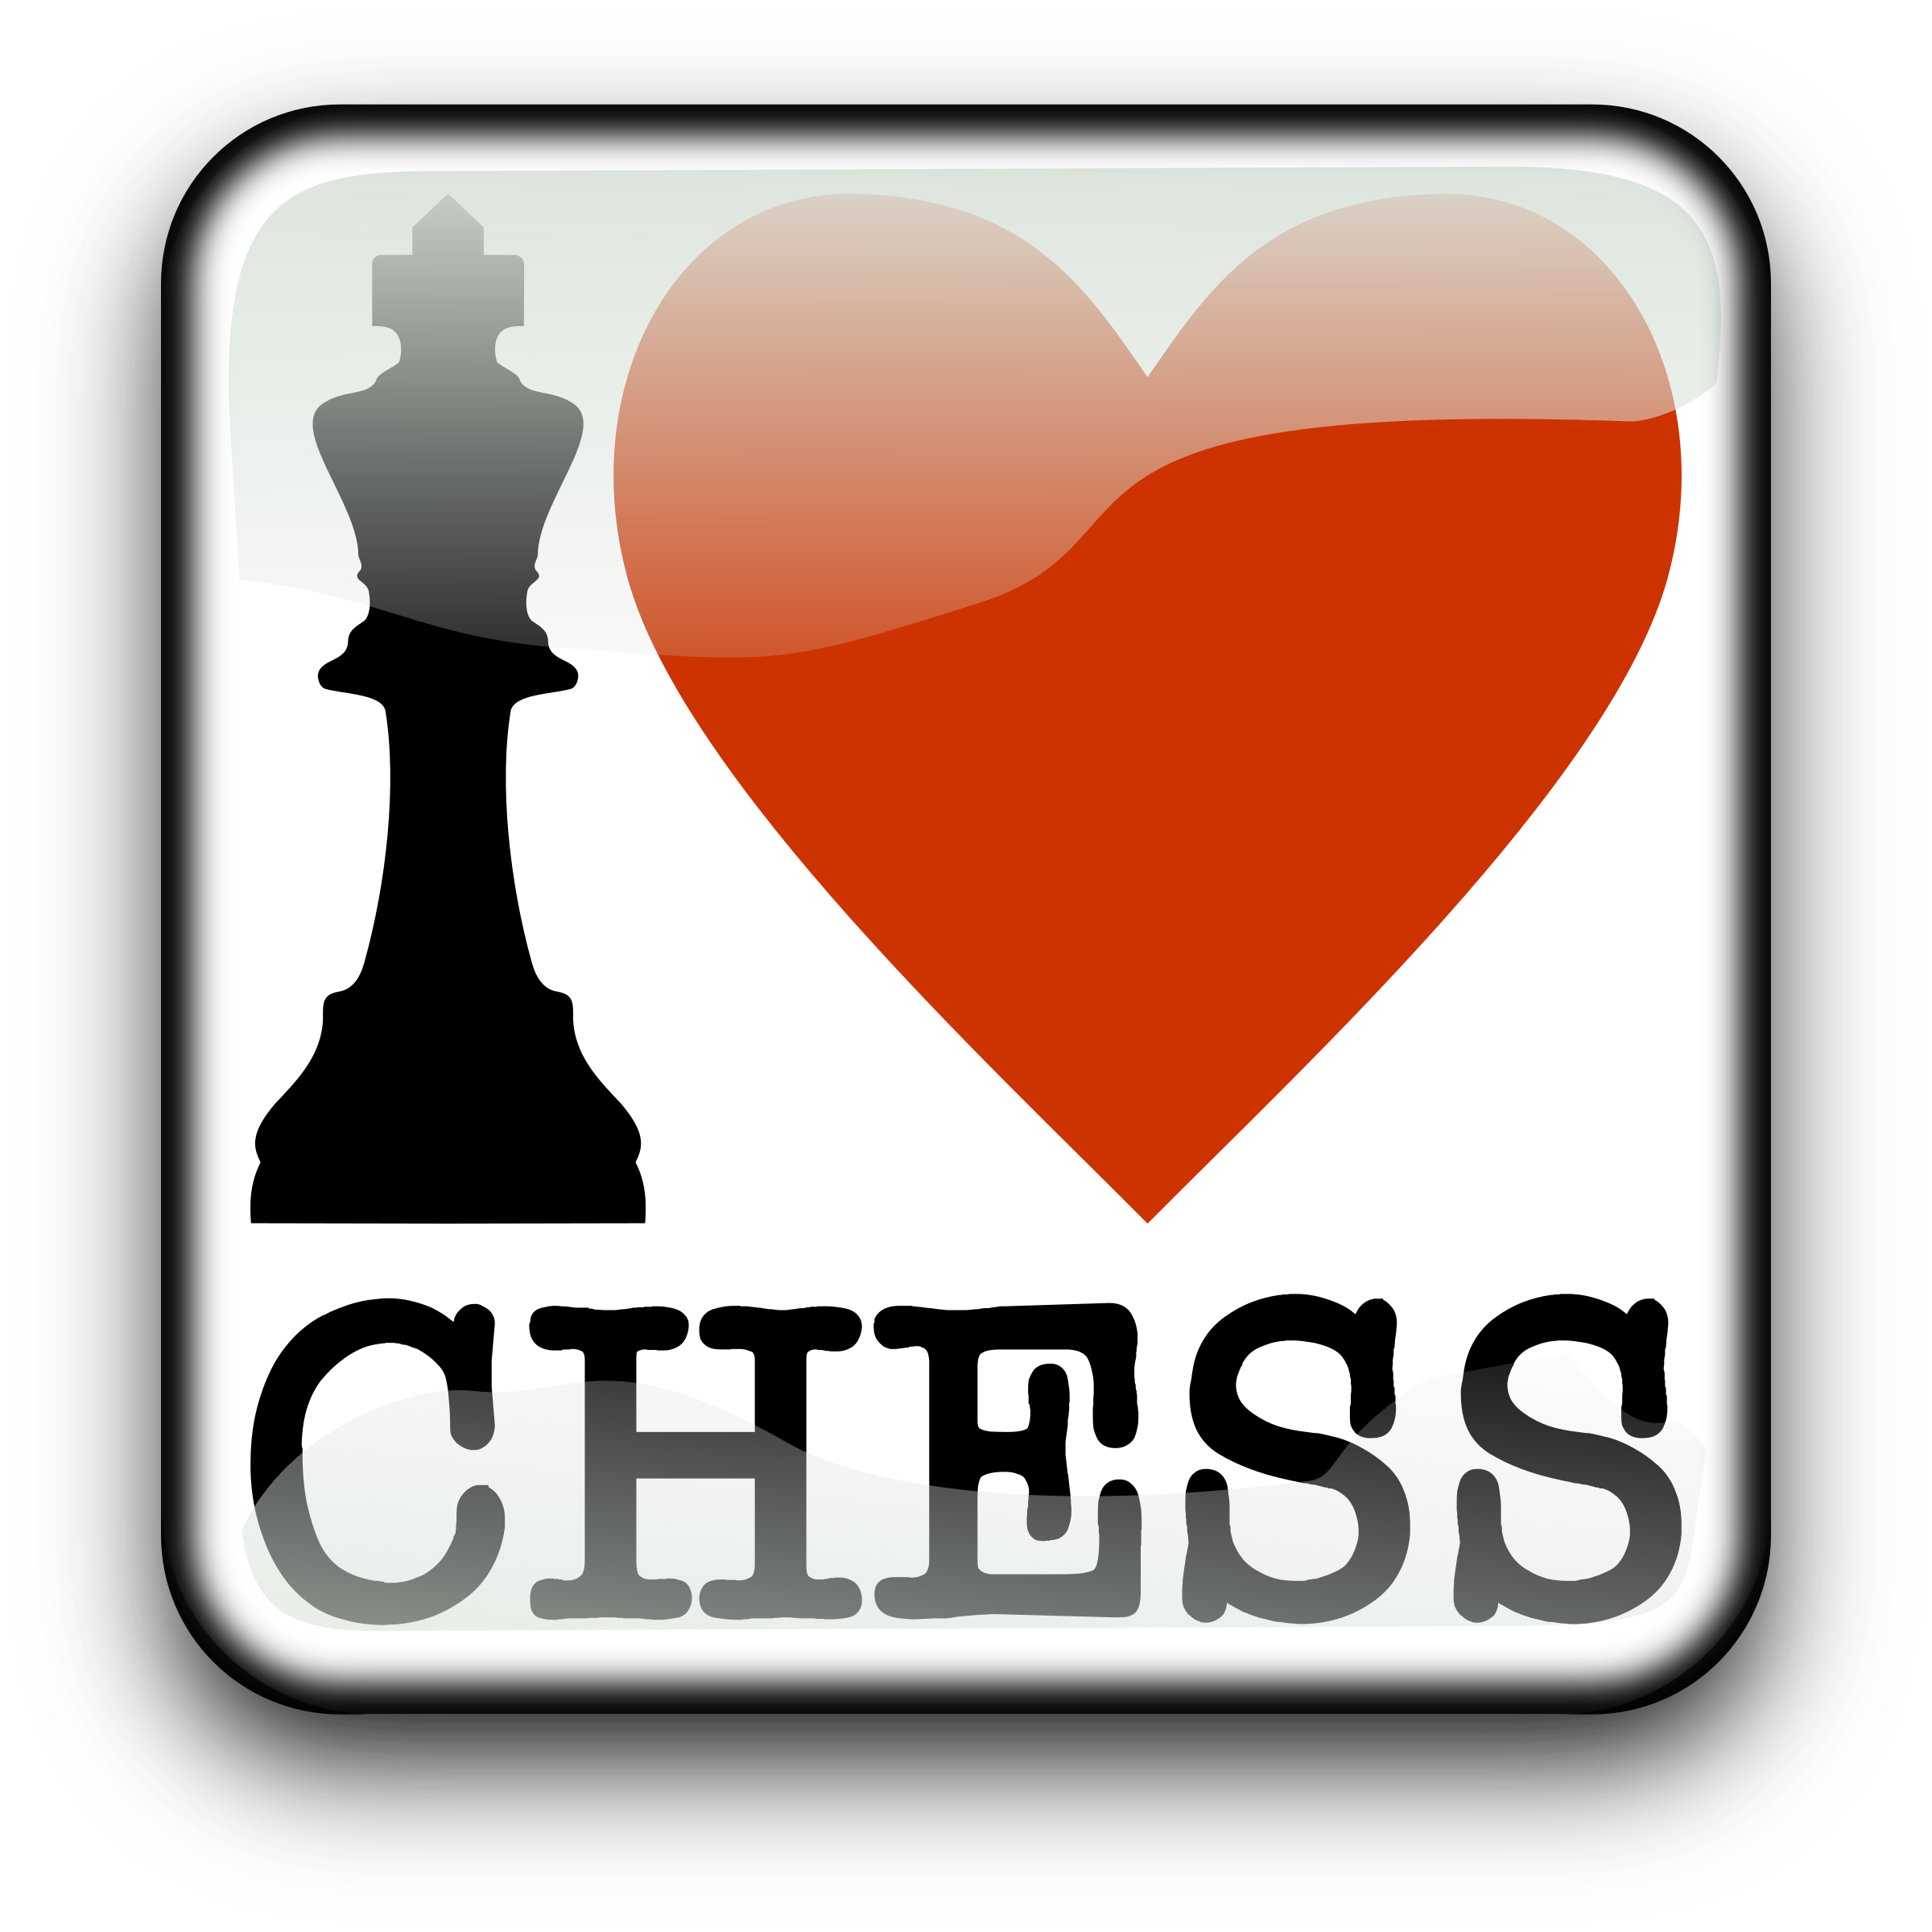 I Love Chess - REMIX / Amo el Ajedrez by DG-RA